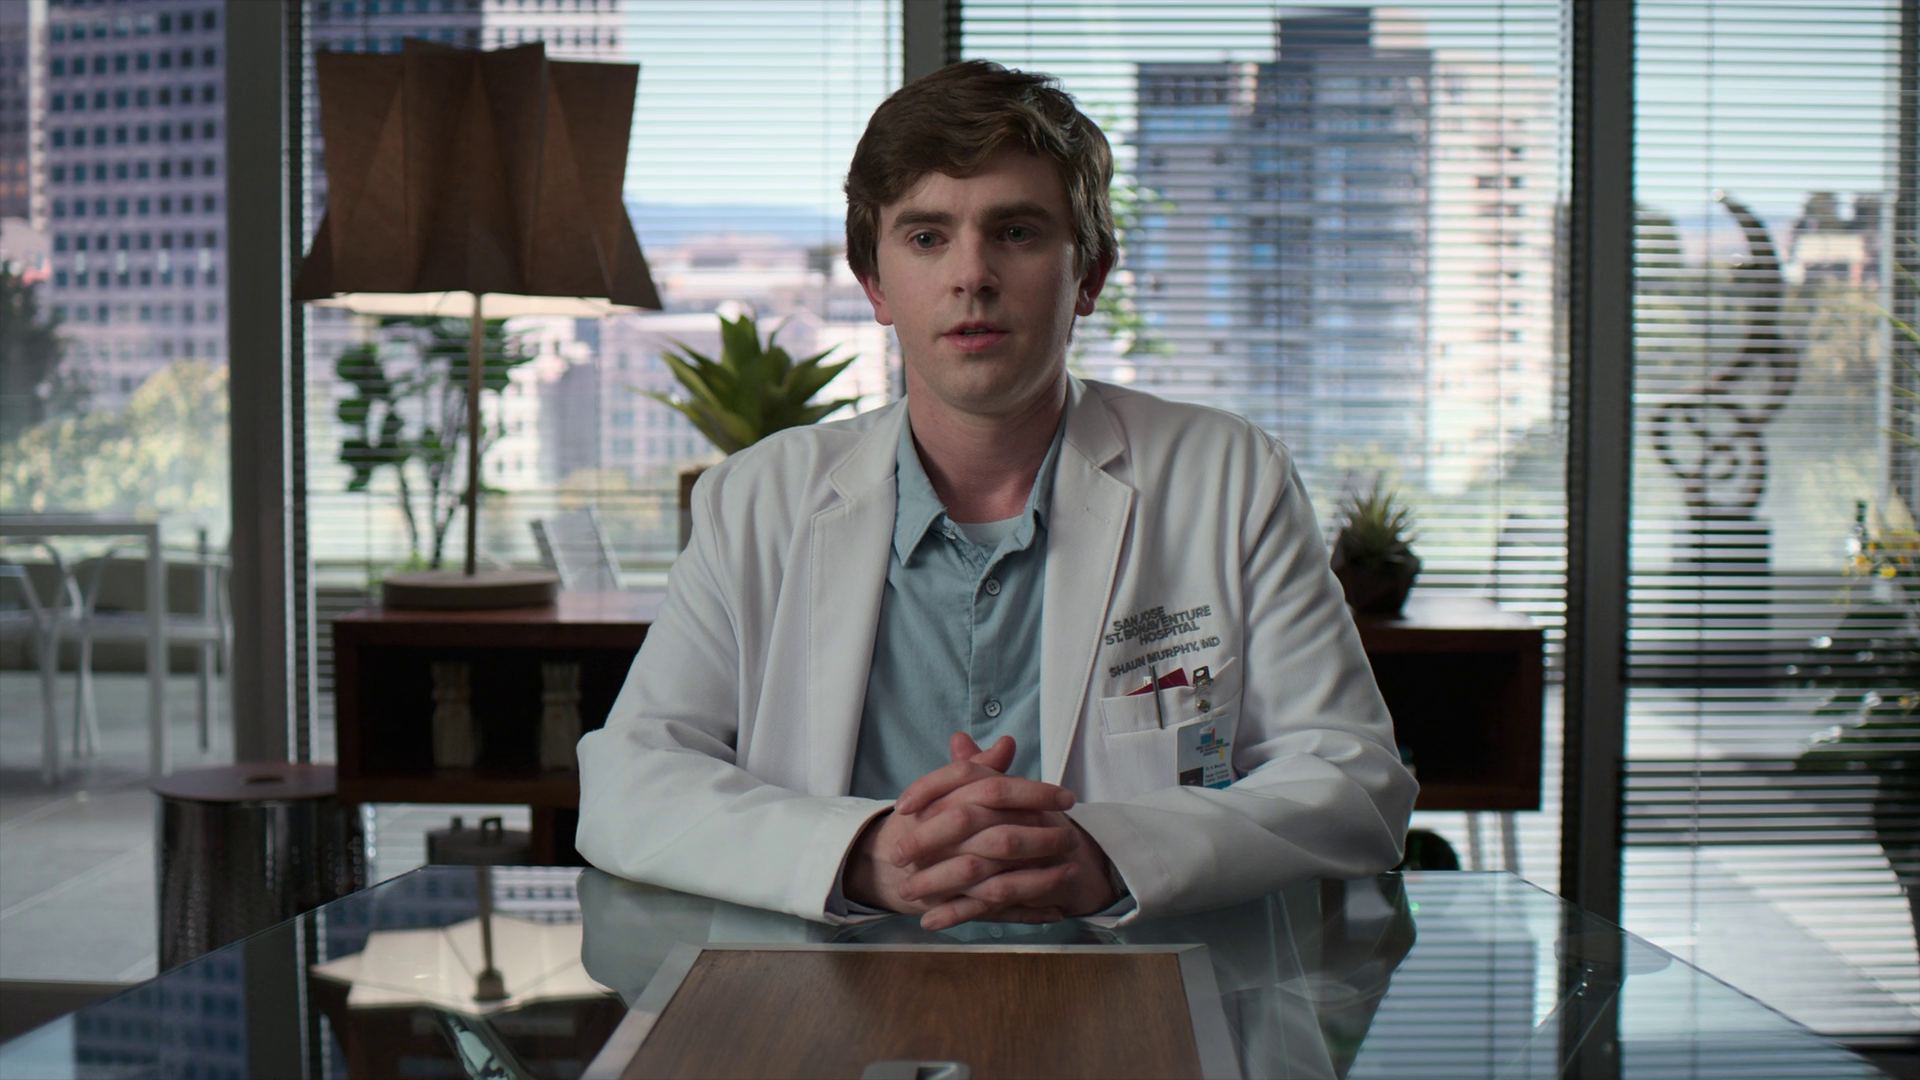 The Good Doctor - Stagione 3 (2020) (14/18) WEBMux 1080P HEVC ITA ENG AC3 x265 mkv Vlcsnap-2020-02-15-0030j1p